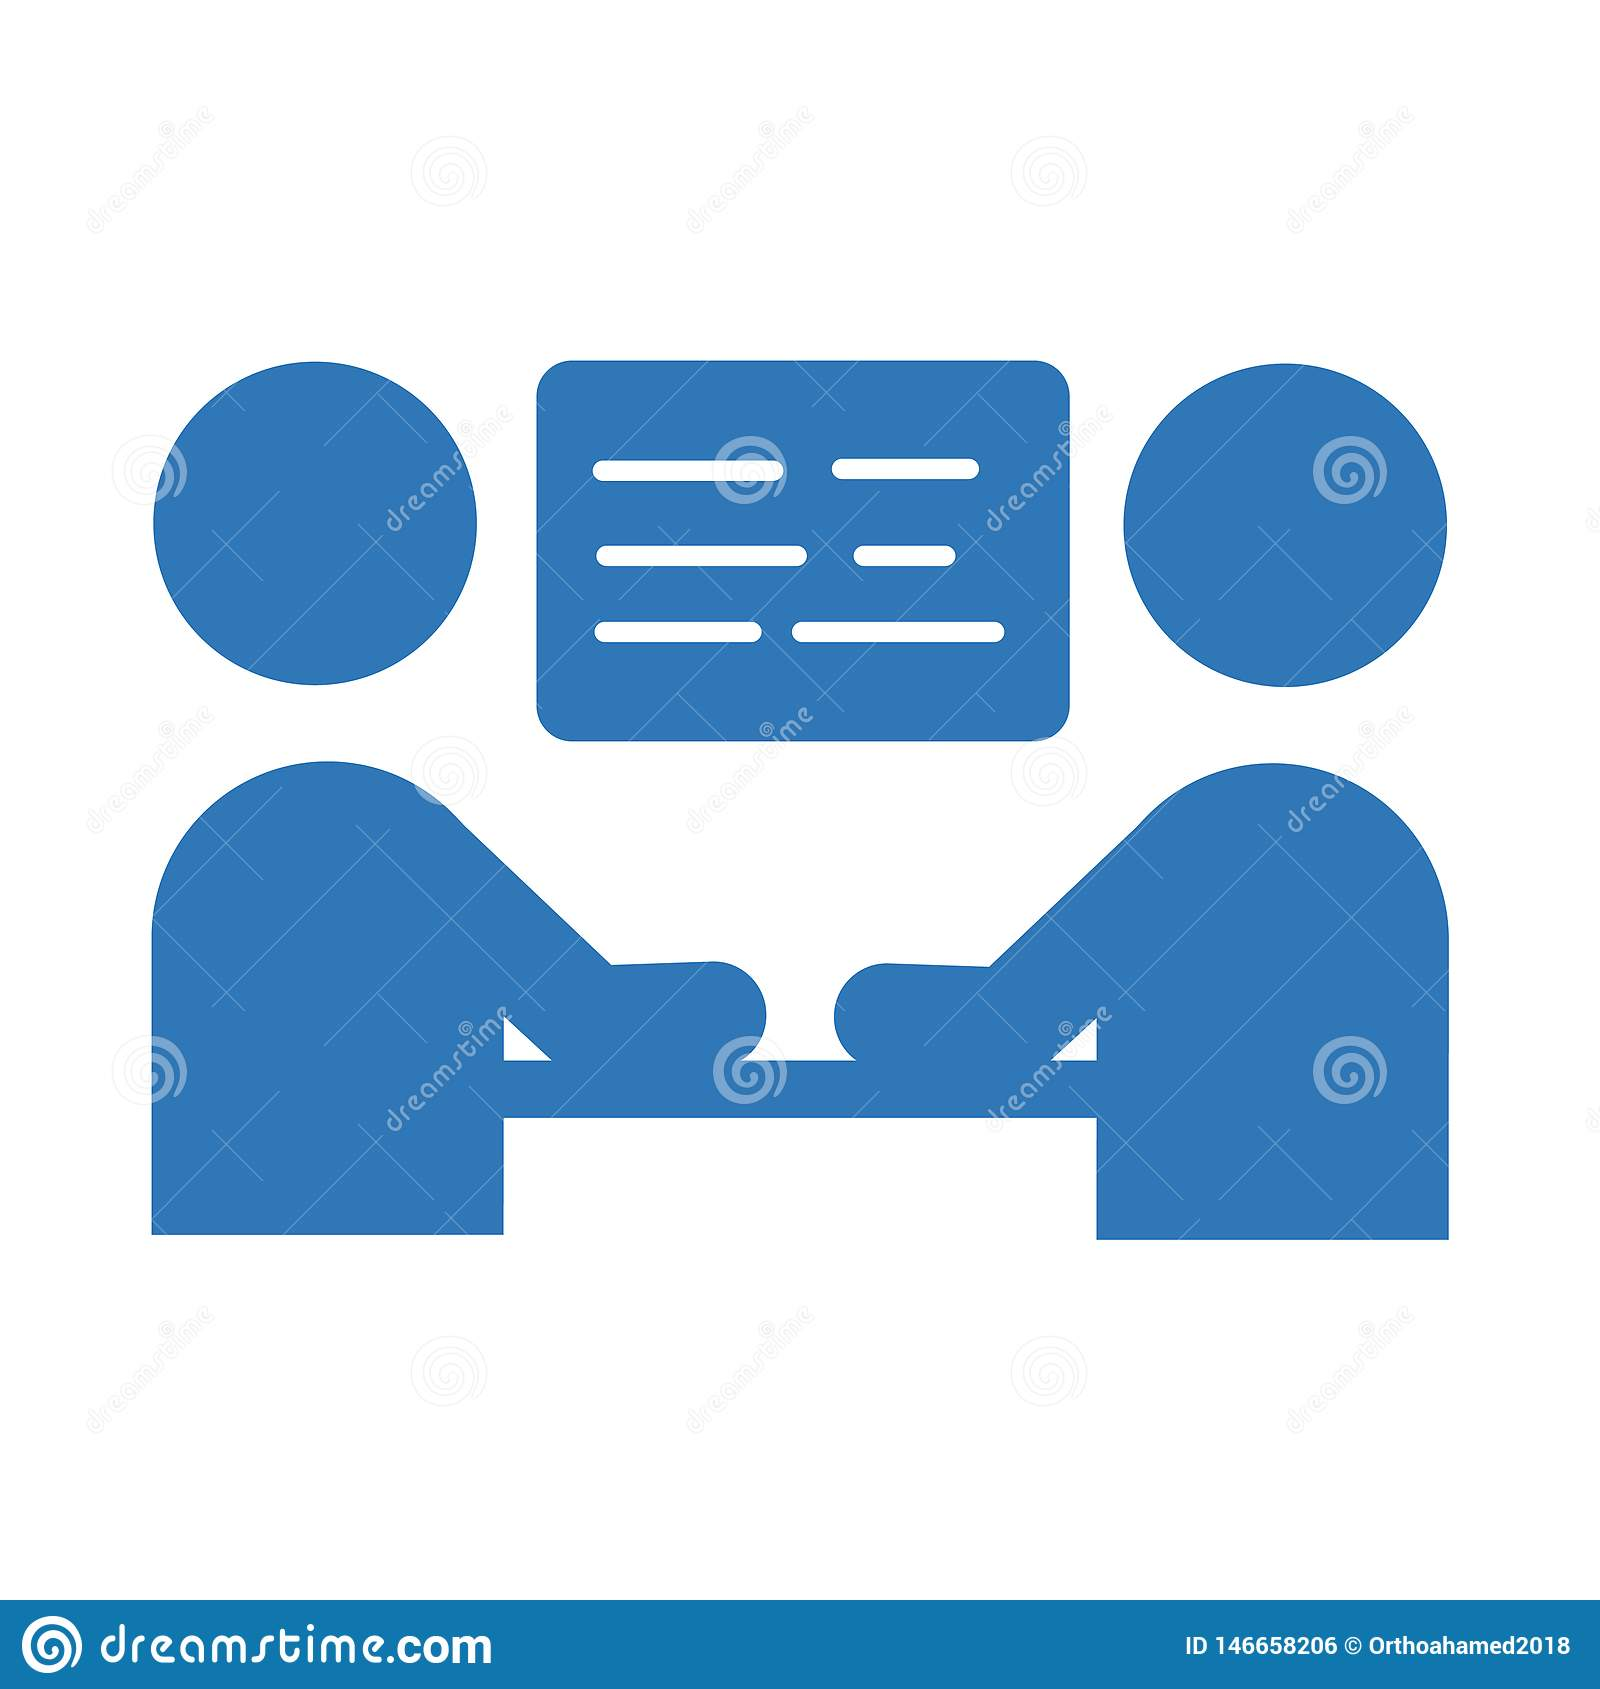 Business meeting icon. Vector sign symbol